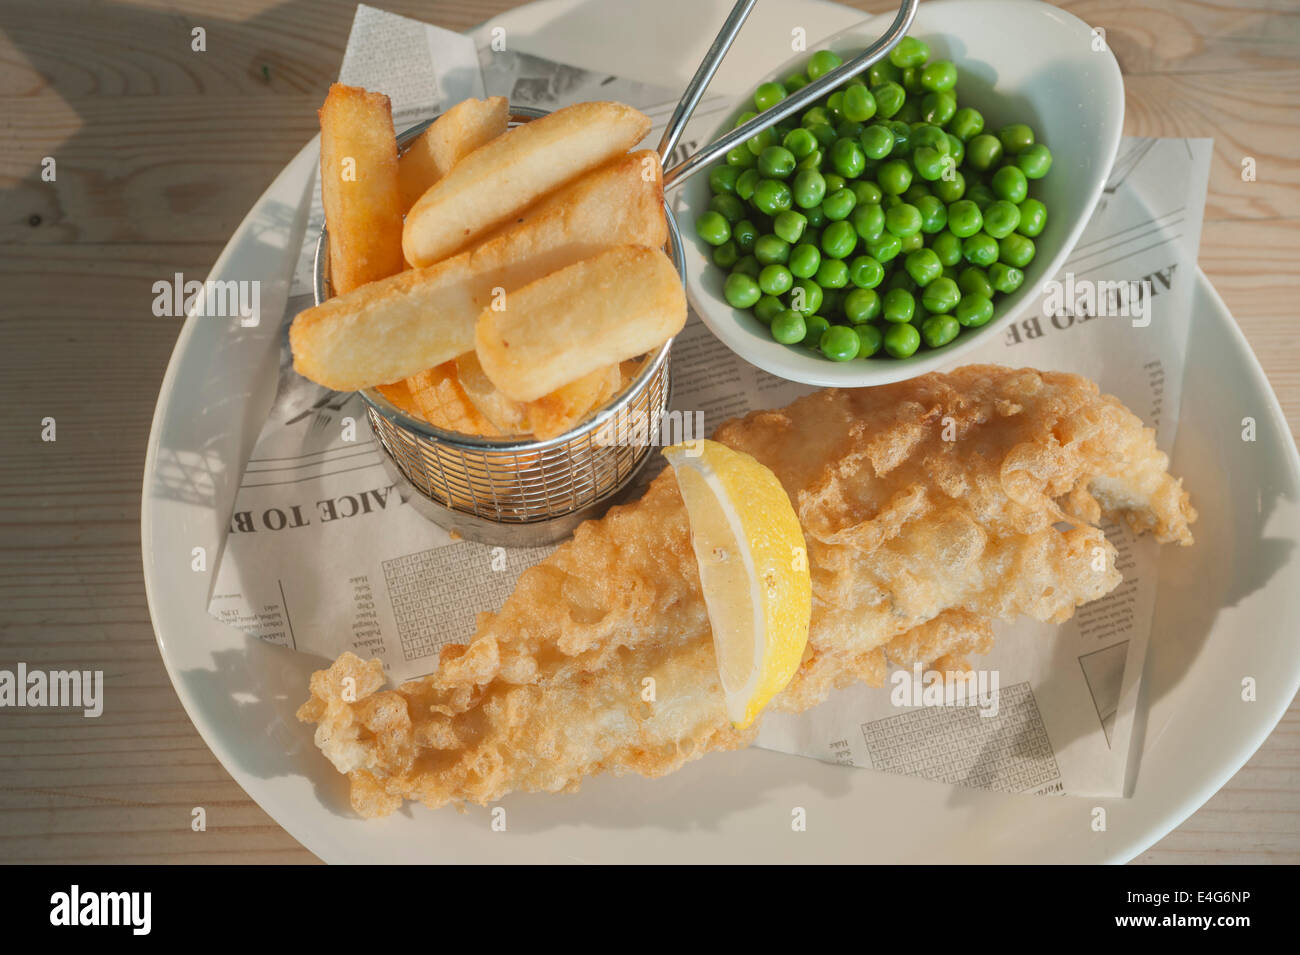 Fish and chips (Deep fried Haddock in batter) with peas and a segment of lemon  on a white plate on a wooden table - Stock Image